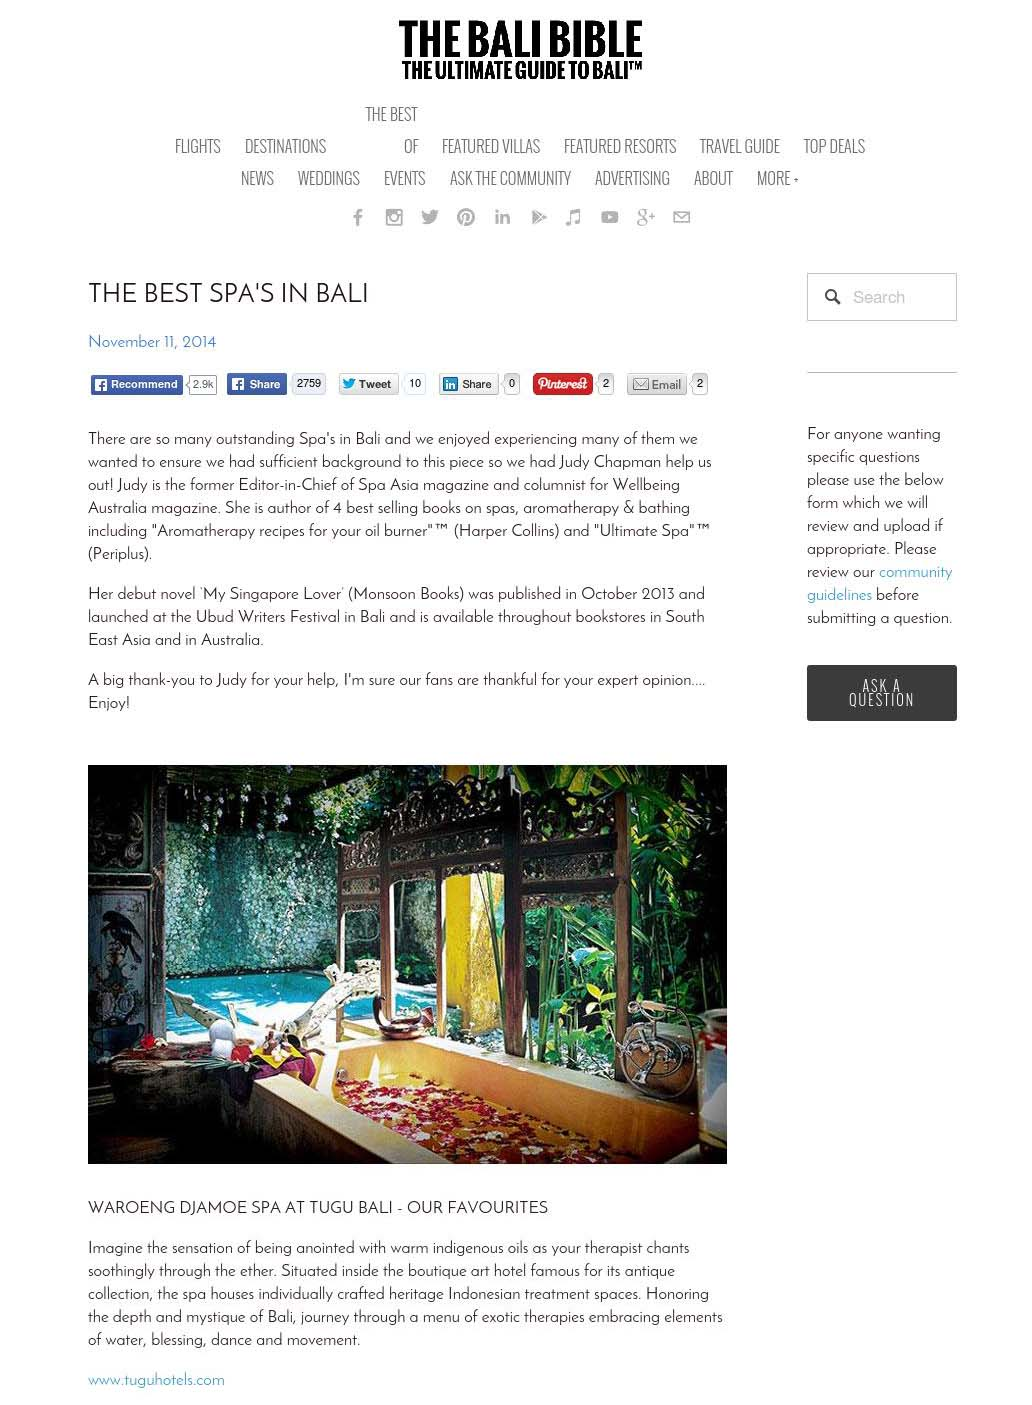 THE BEST SPA'S IN BALI - thebalibible.com